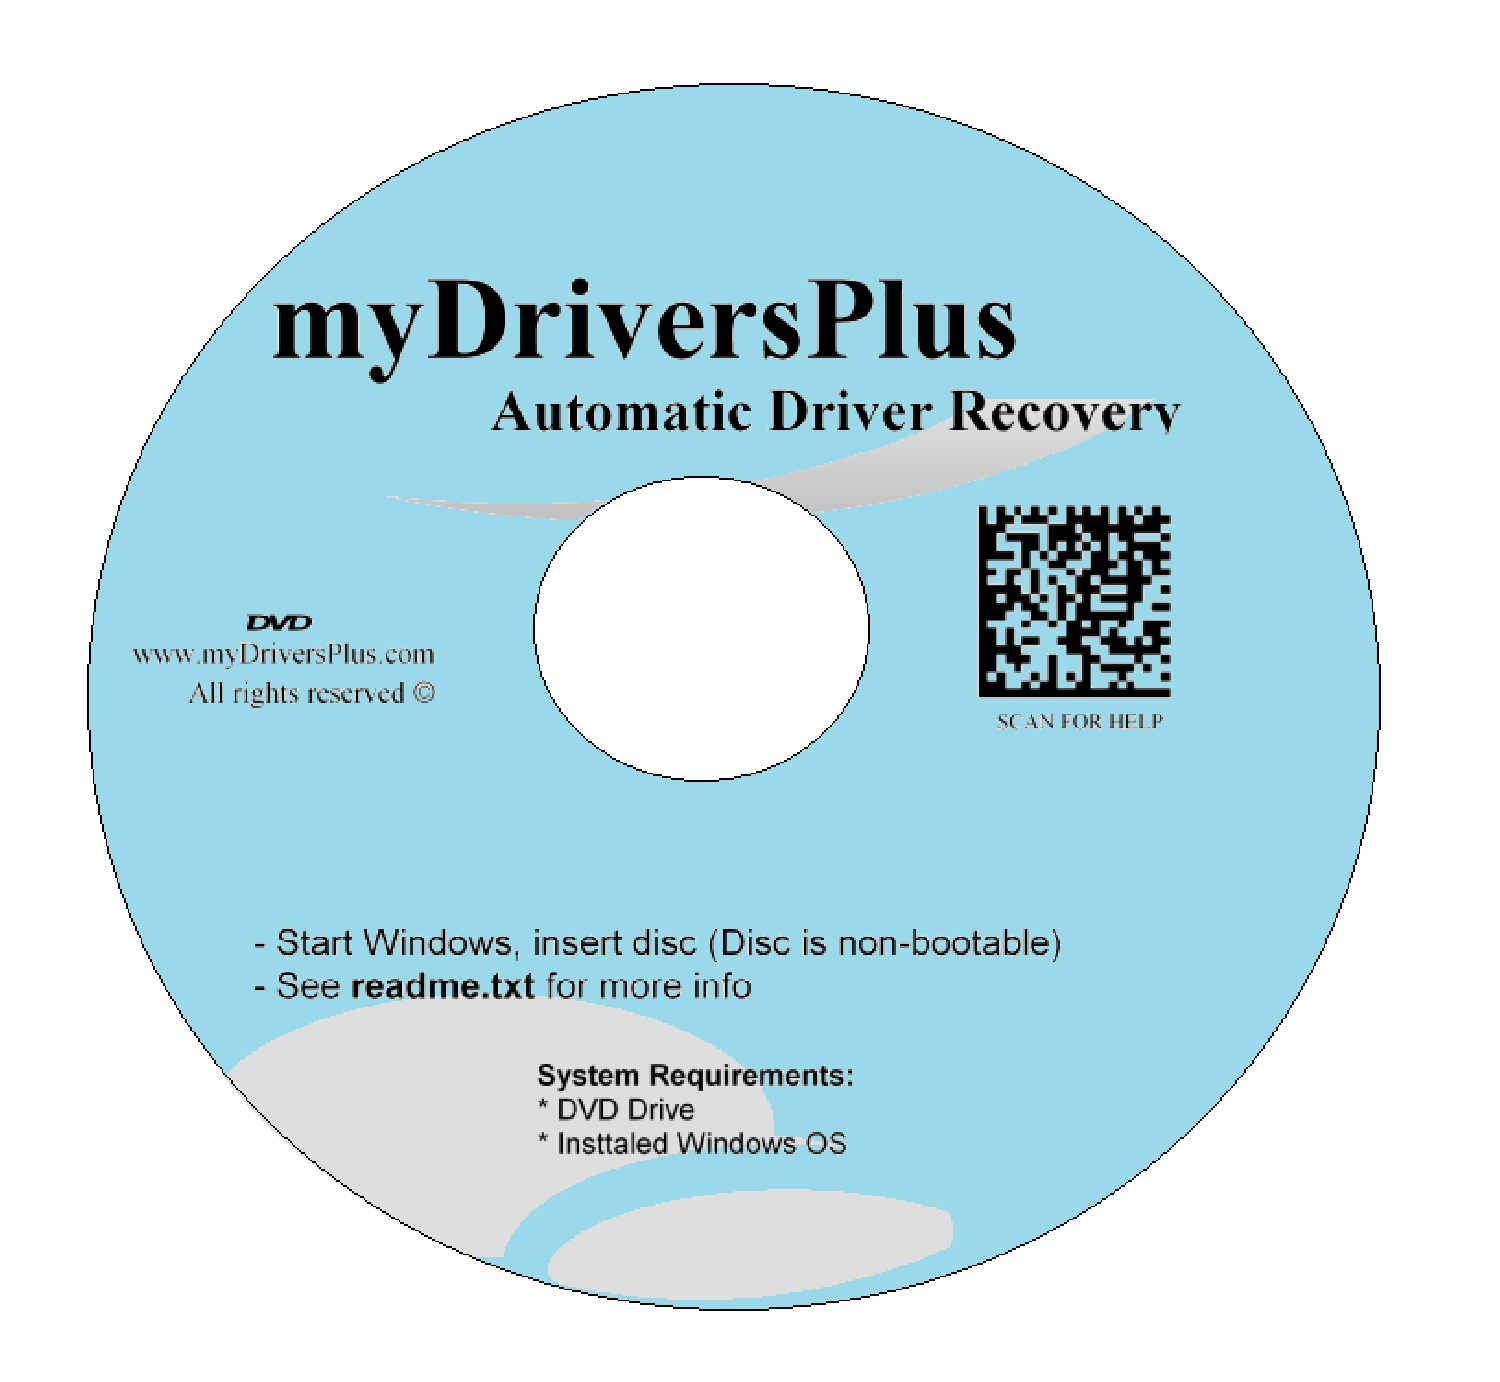 HP Pavilion DV6105CA Drivers Recovery Restore Resource Utilities Software with Automatic One-Click Installer Unattended for Internet, Wi-Fi, Ethernet, Video, Sound, Audio, USB, Devices, Chipset ...(D